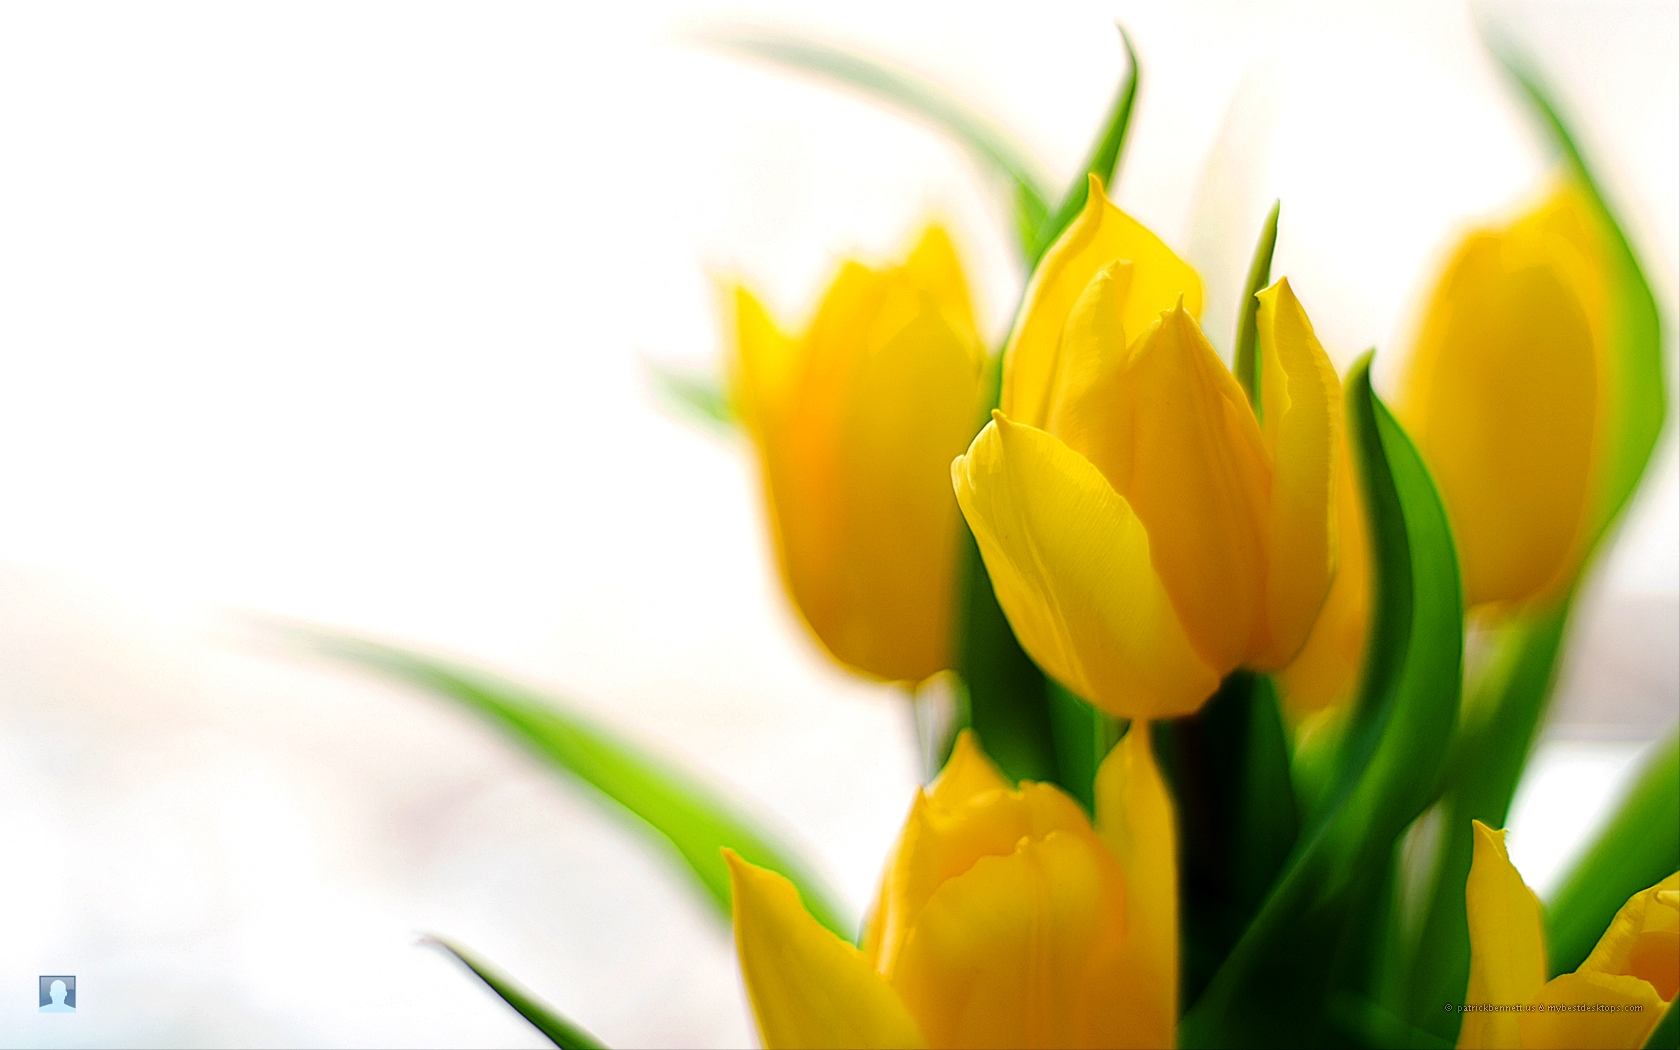 Images, Wallpapers of Spring Flowers in HD Quality: BsnSCB.com.